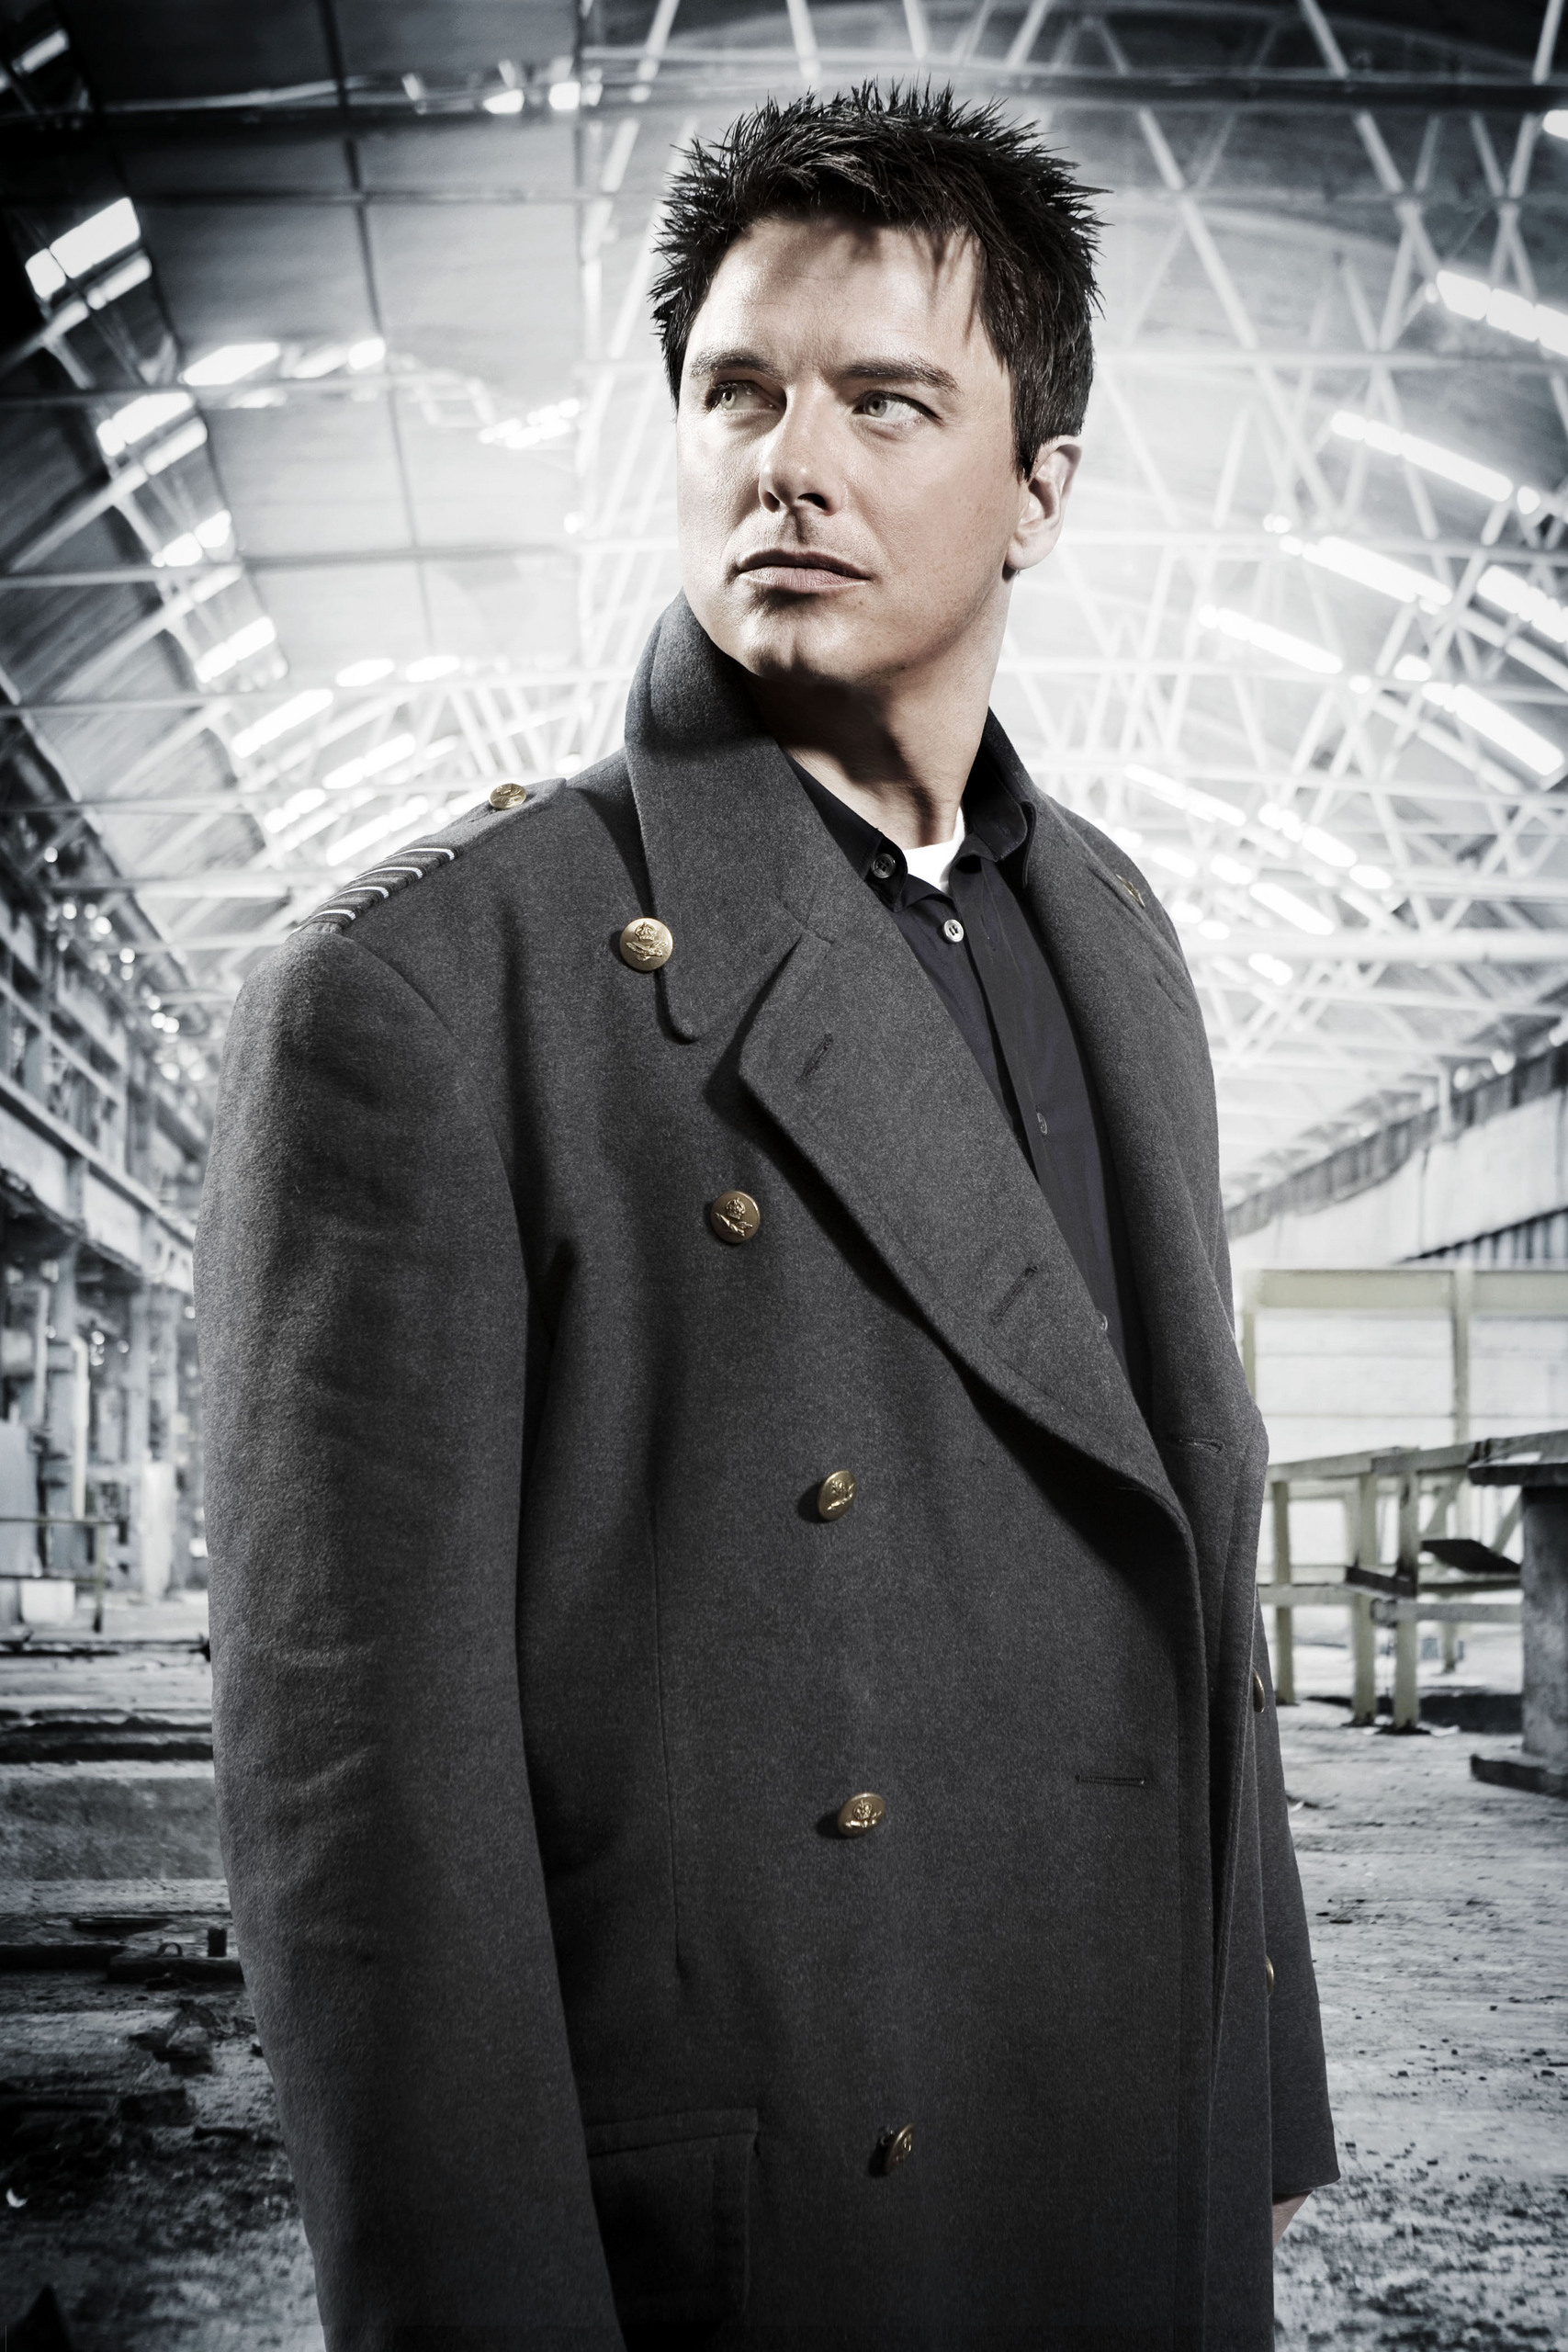 Sexualized Saturdays: The Doctor and His Many Companions ...